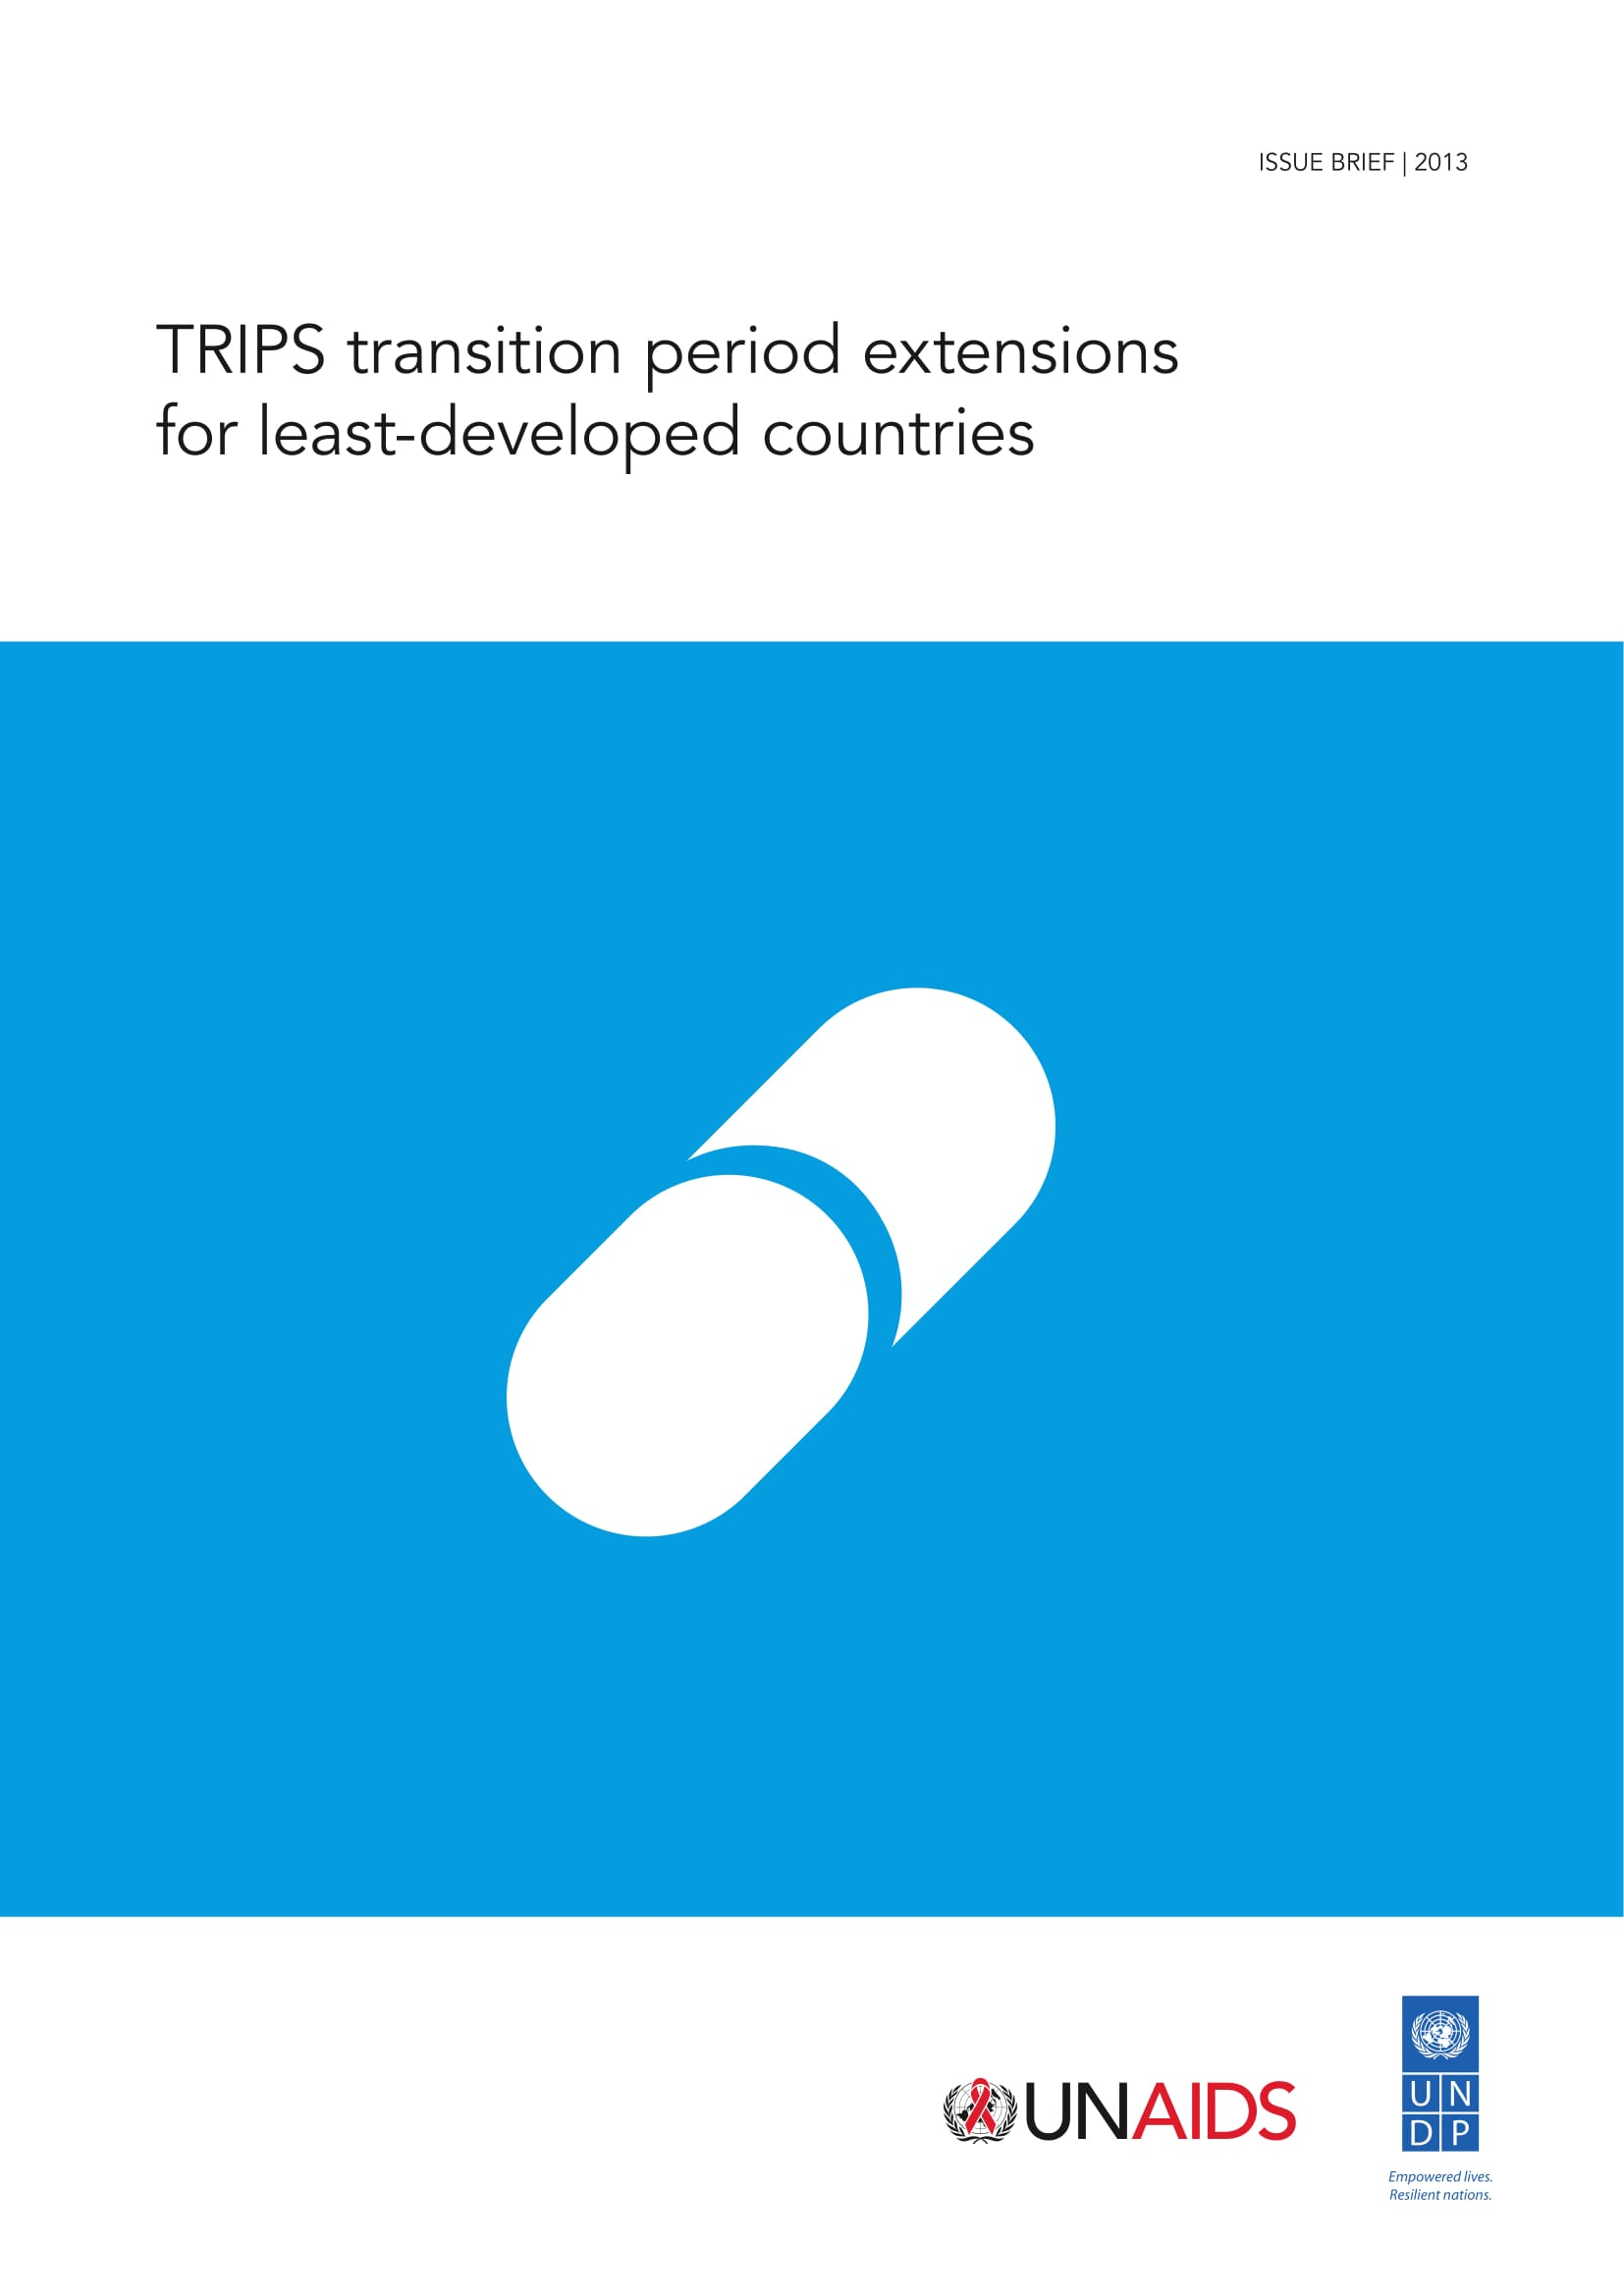 TRIPS transition period extensions for least-developed countries: Issue brief